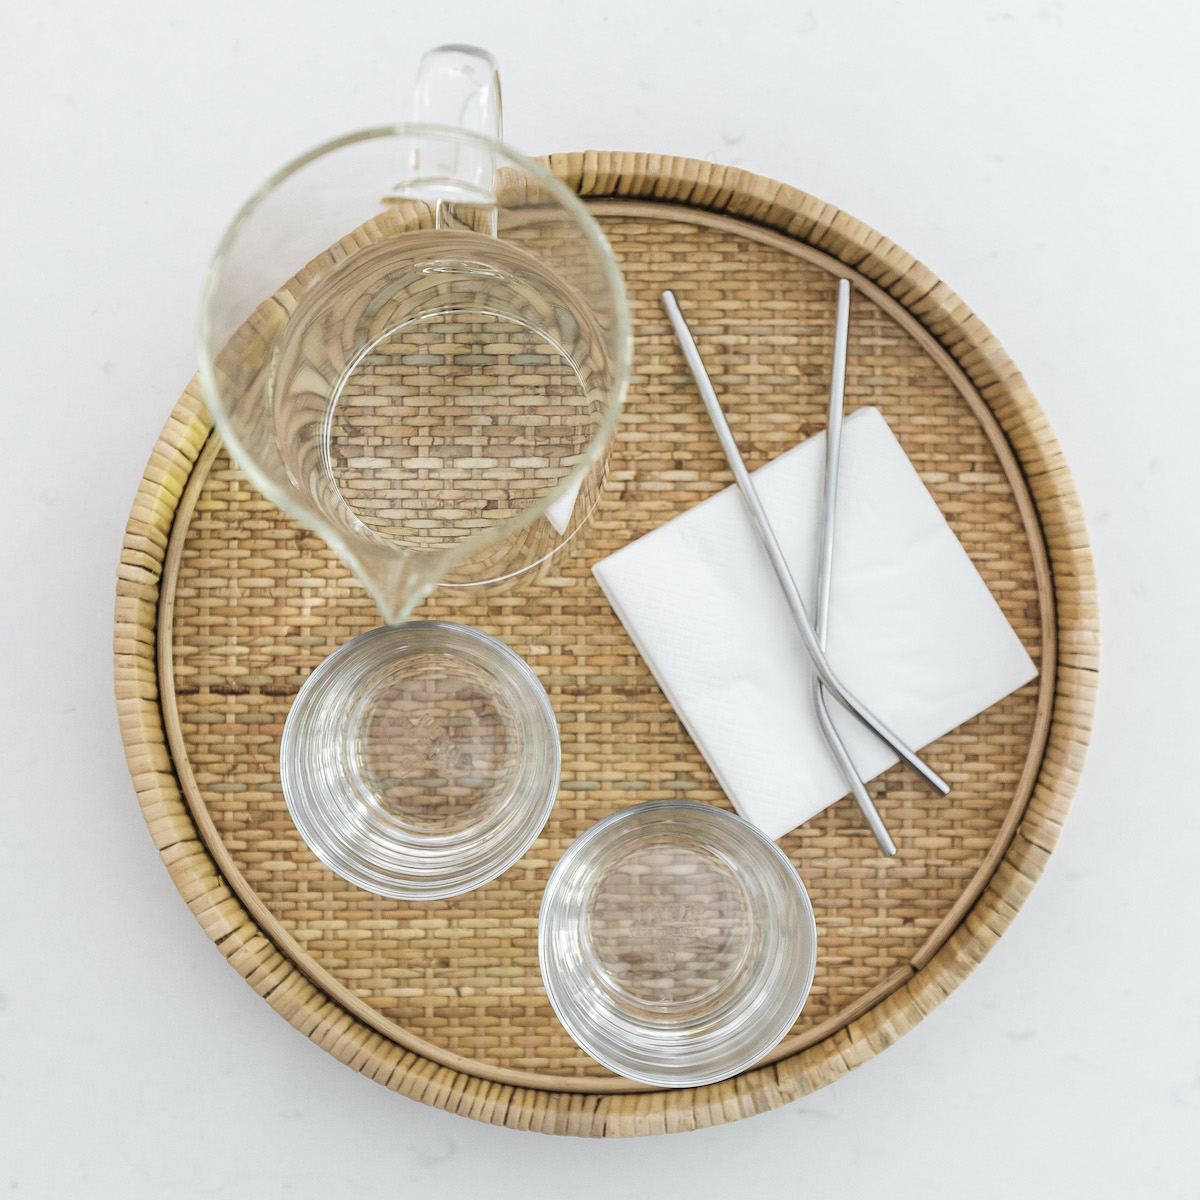 tray-with-glasses-water-pitcher-metal-straws-3